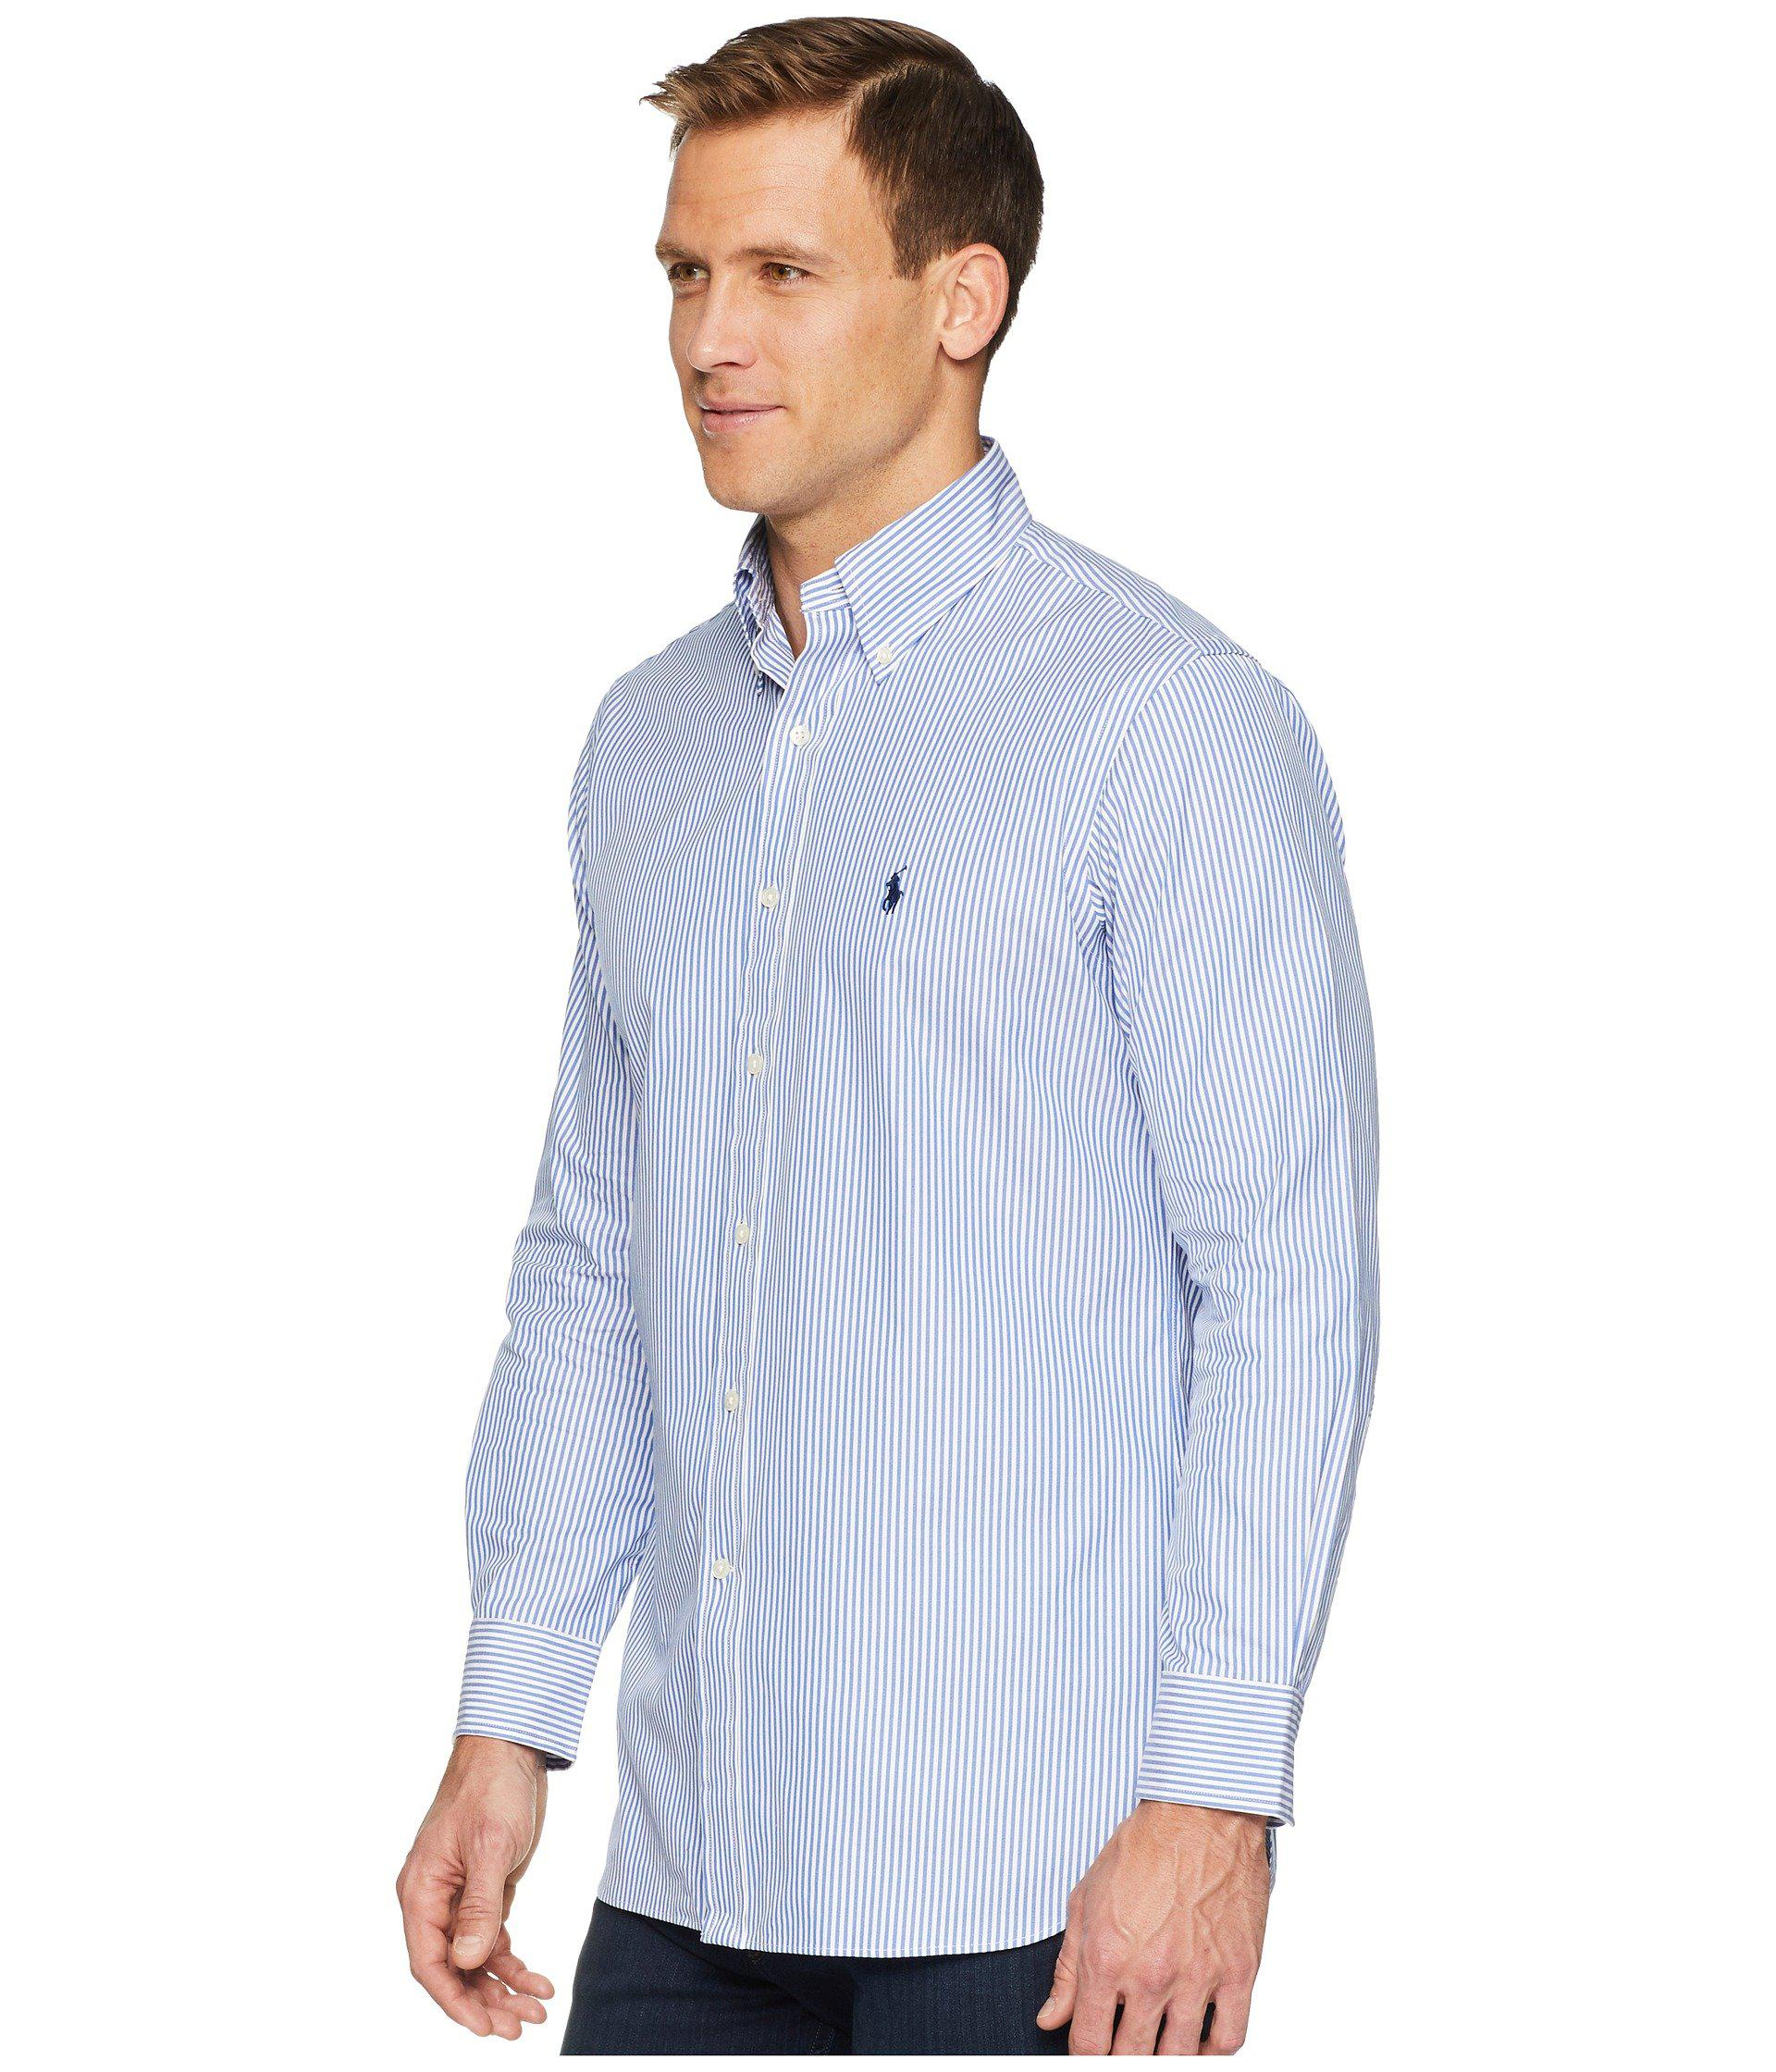 dd482a8365035 Lyst - Polo Ralph Lauren Standard Fit Poplin Dress Shirt (white) Men s Long  Sleeve Button Up in Blue for Men - Save 11%